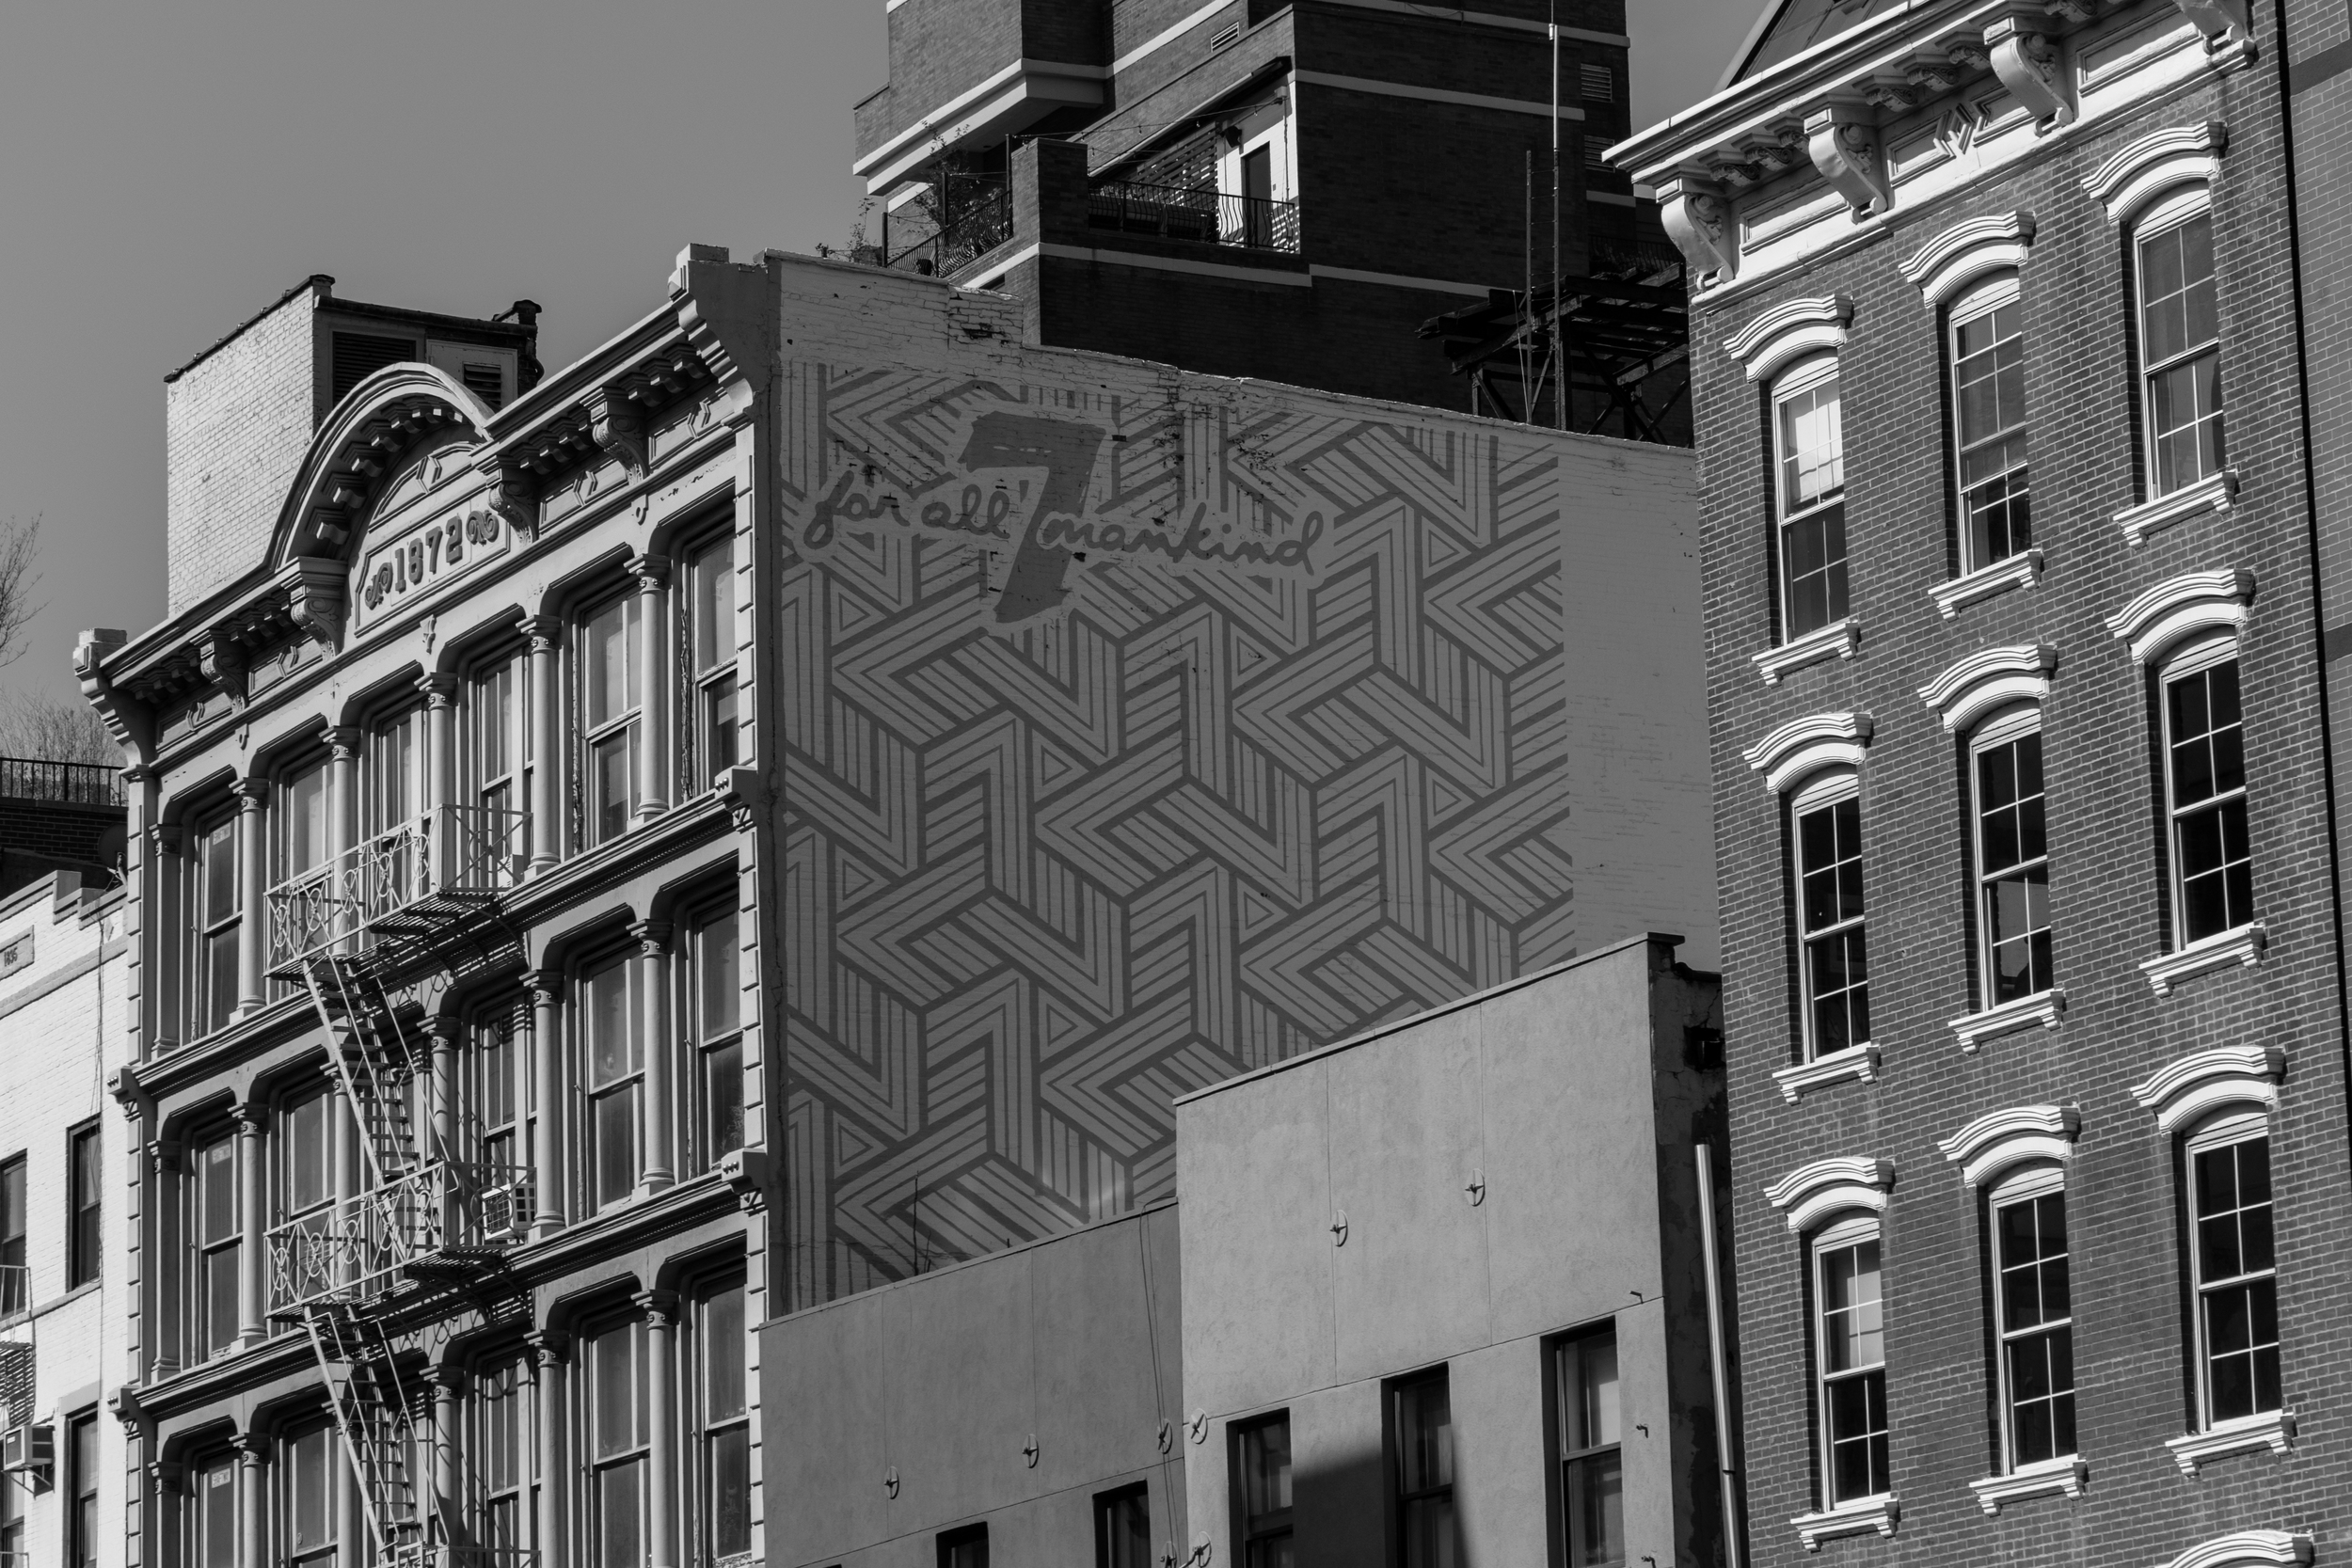 Even the blank walls in SOHO have beautiful details.